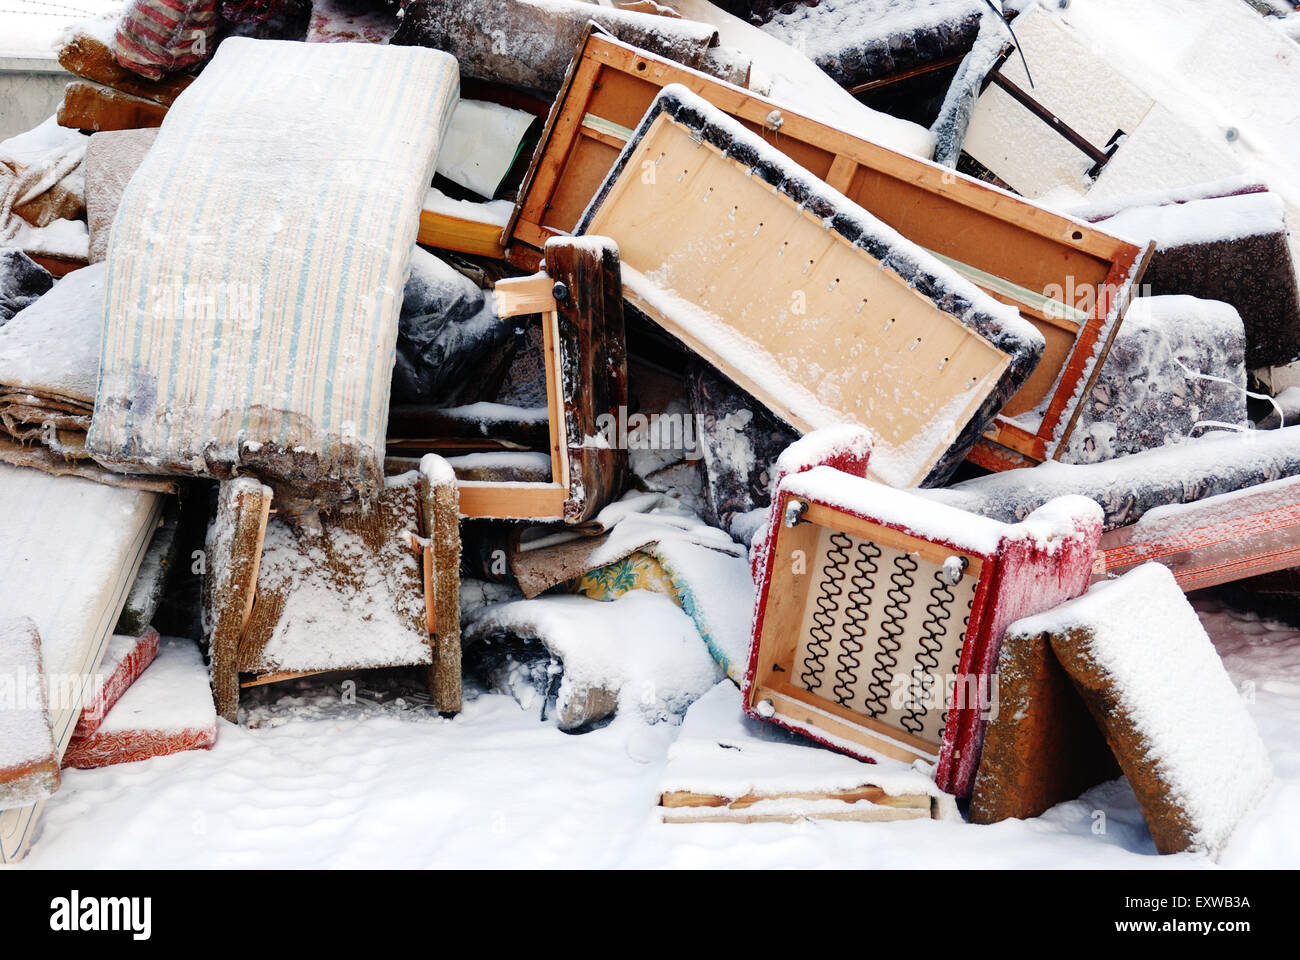 old furniture for disposal under the snow - Stock Image